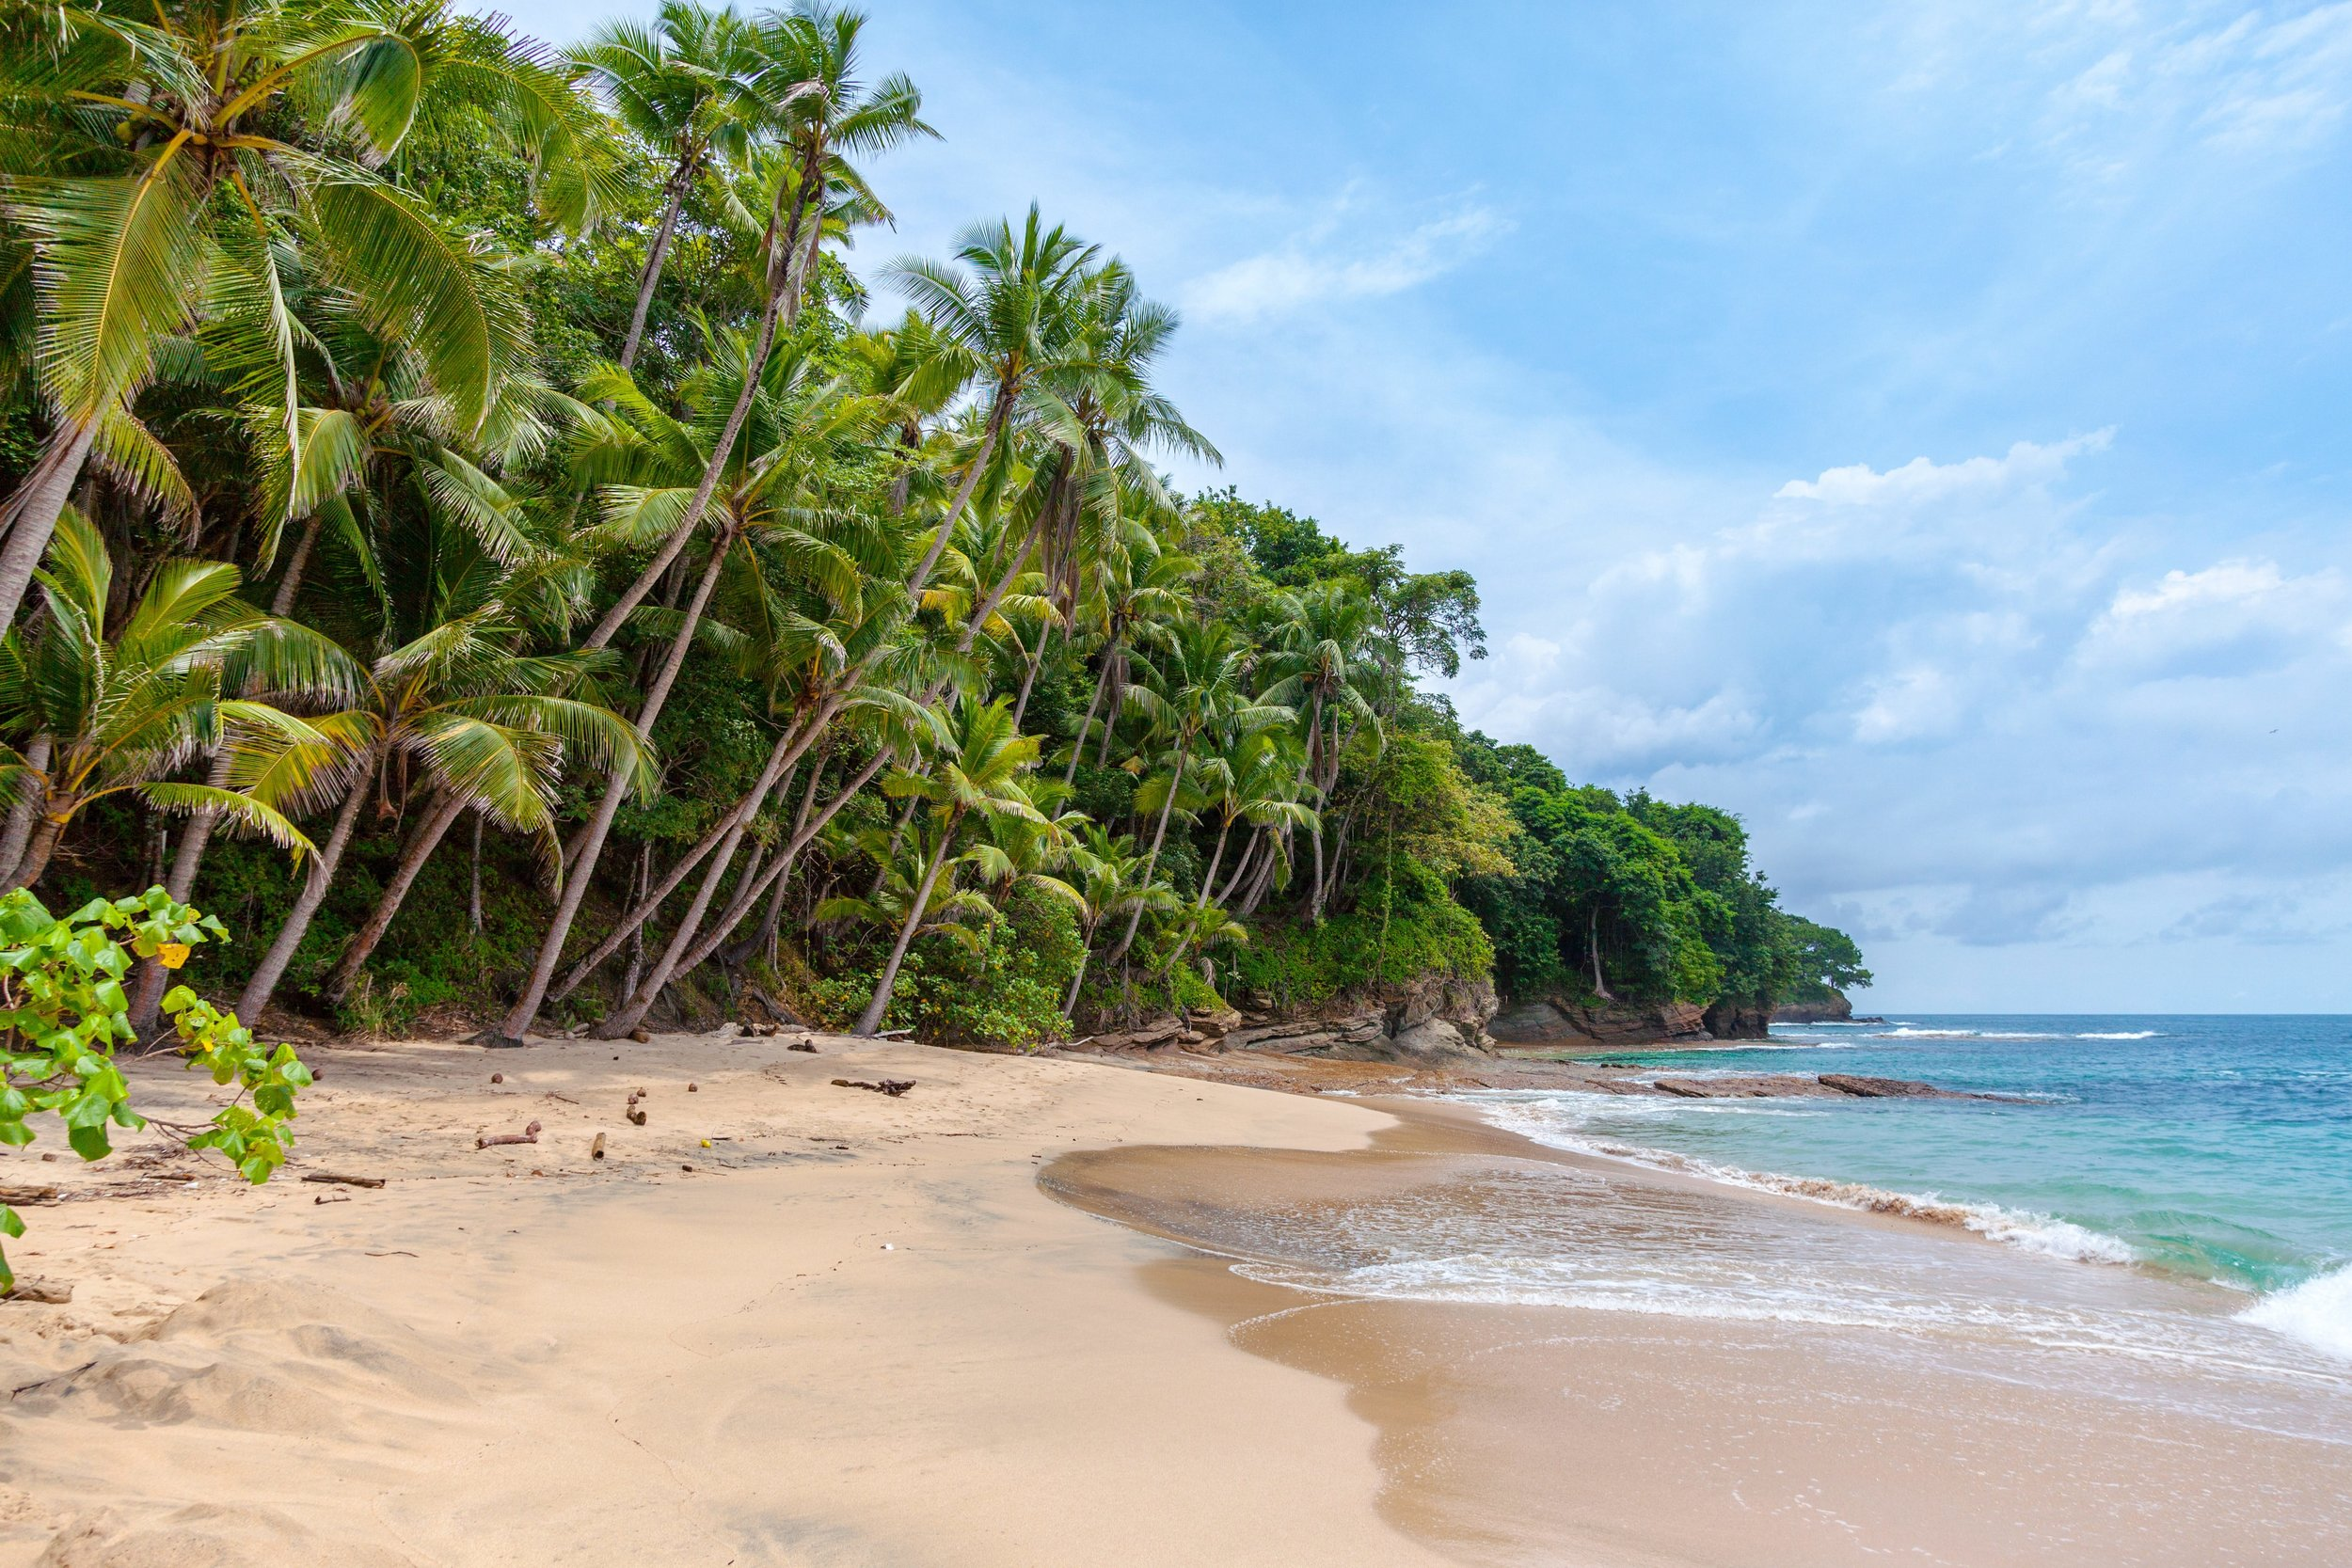 Beach in Trincomalee, Sri Lanka one of the top places to visit in Sri Lanka